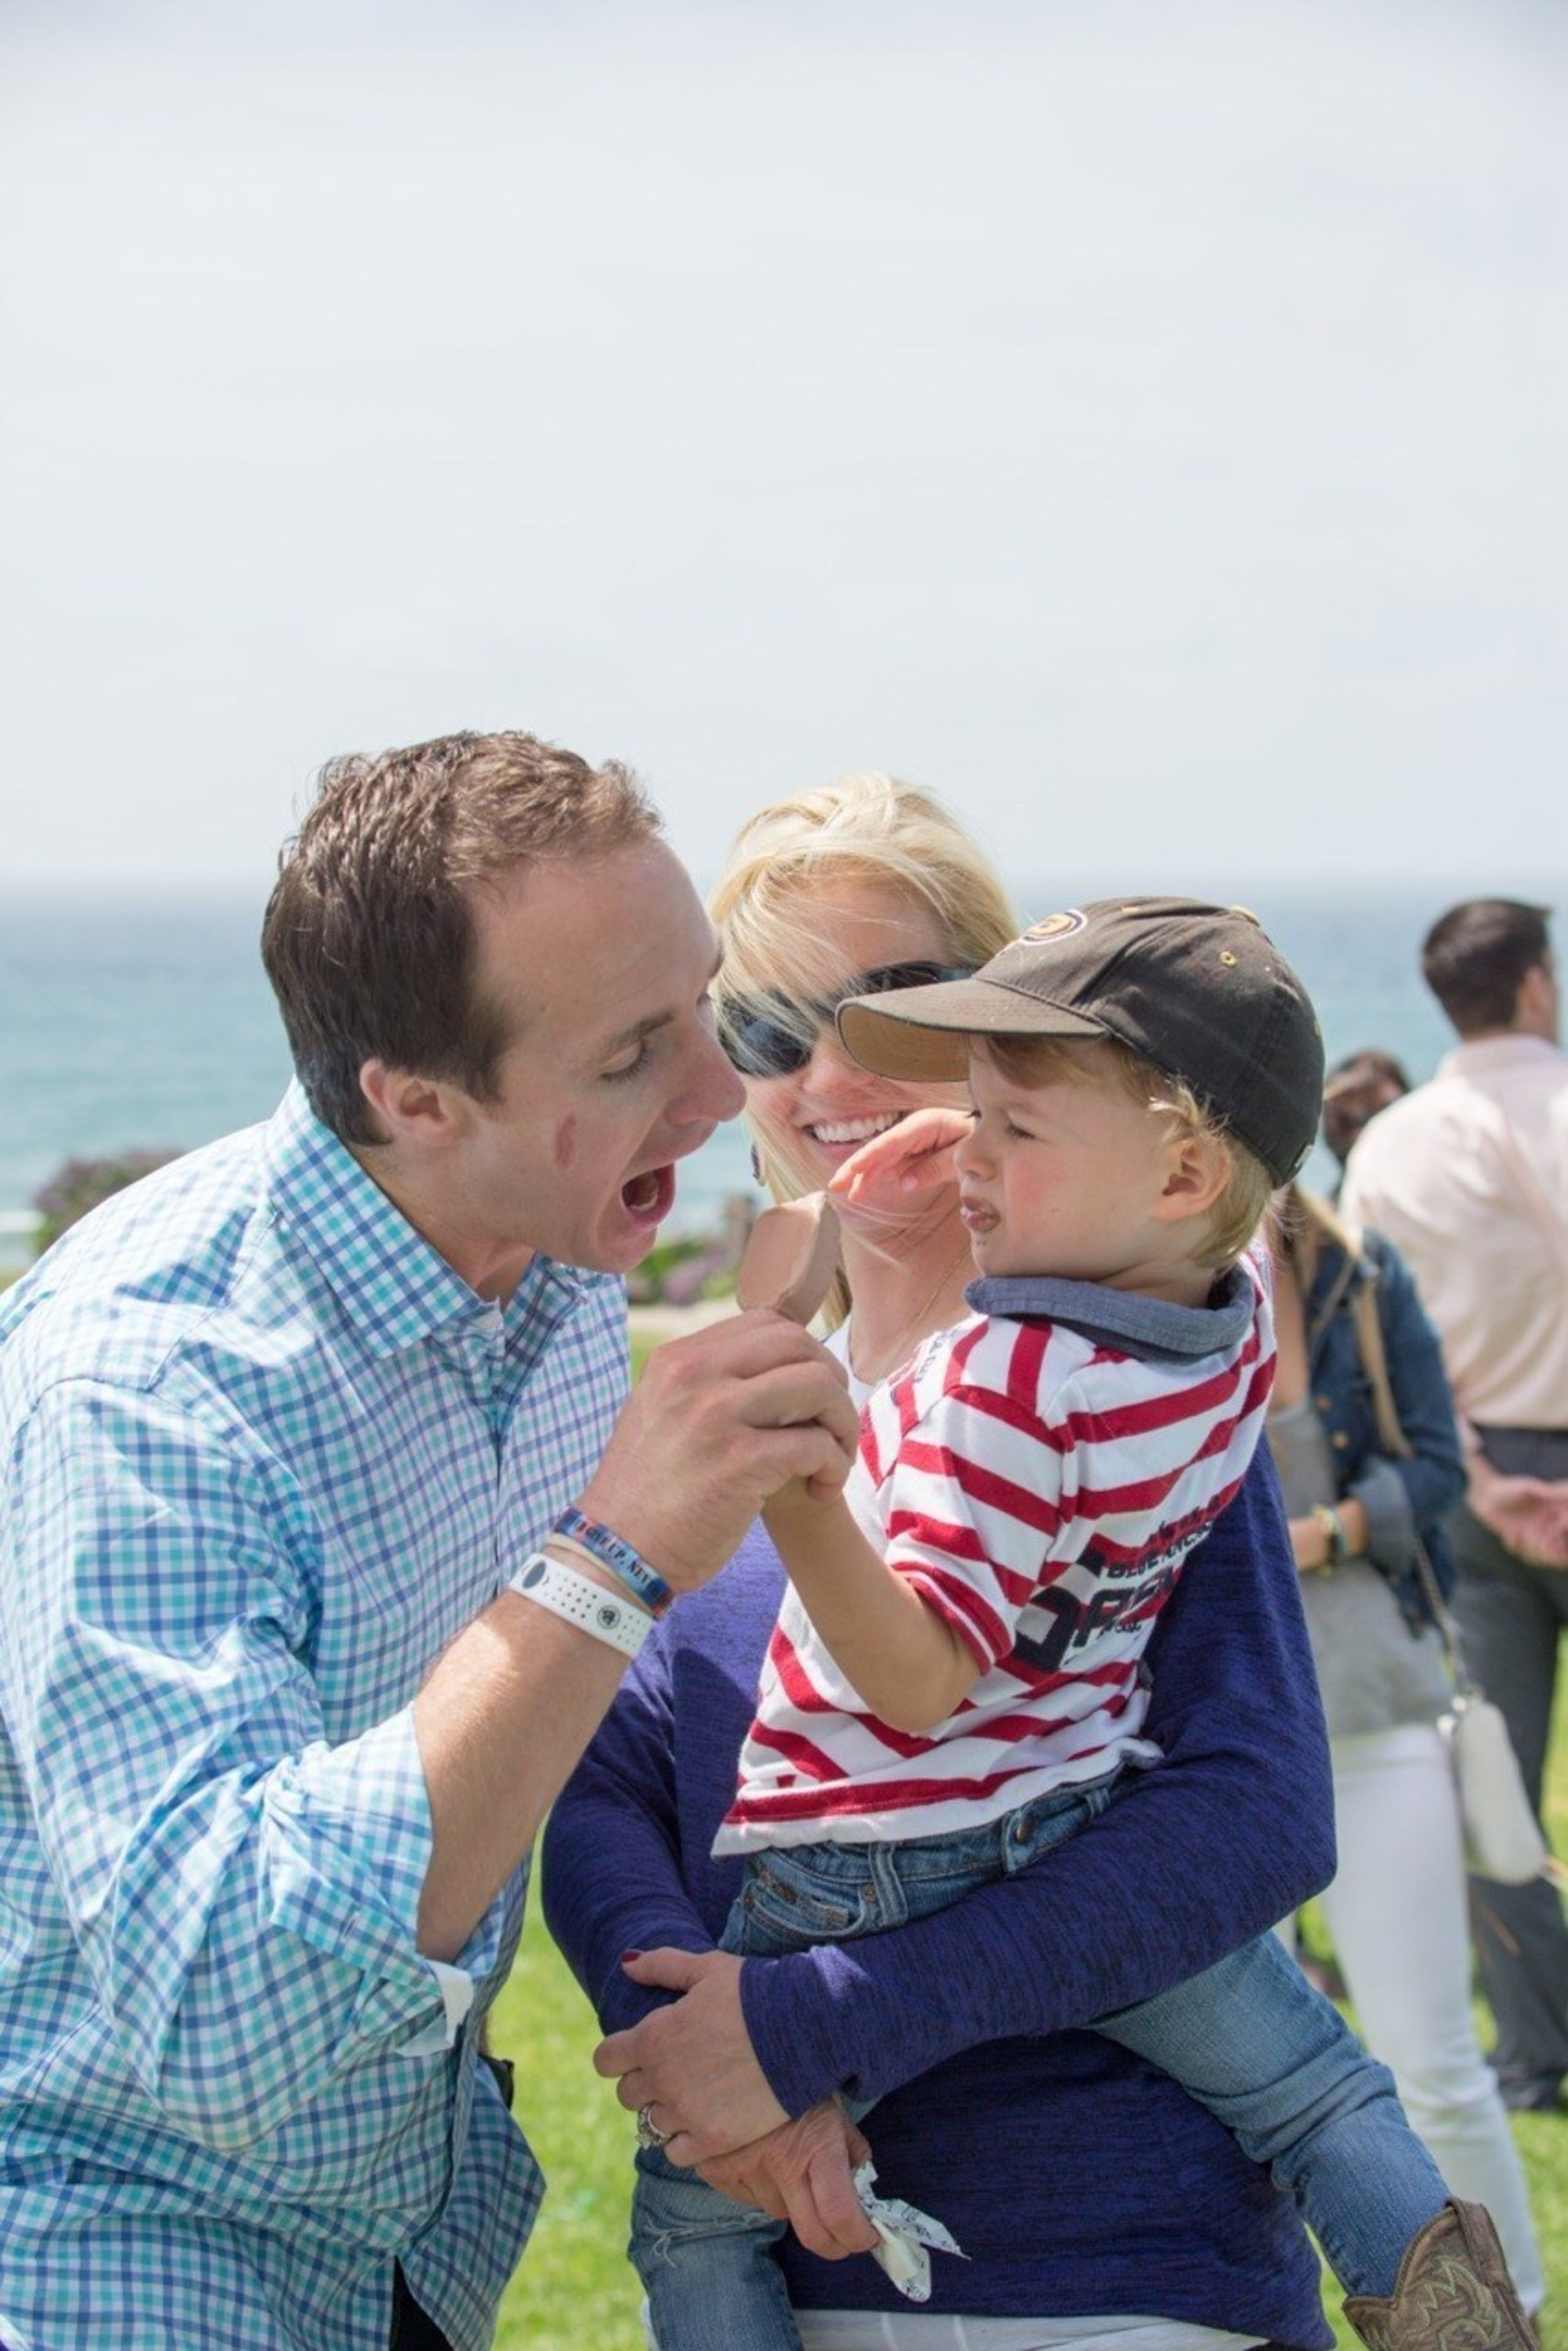 Brittany and Drew Brees invite you to cool off for a good cause this summer. During July and August, So Delicious Dairy Free will donate a percent of sales from all of their frozen desserts to the Brees Dream Foundation.